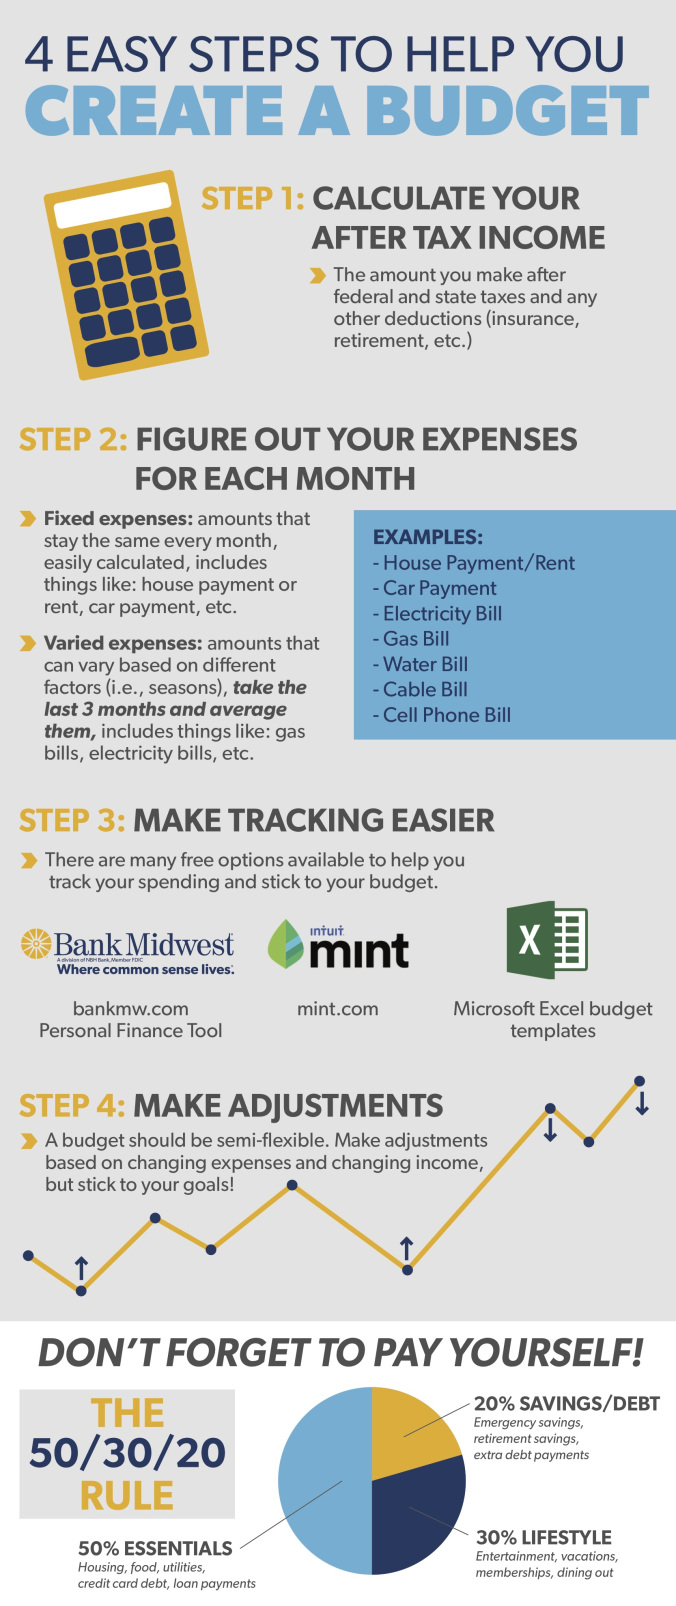 Bank Midwest Knowledge Center Creating A Budget Infographic